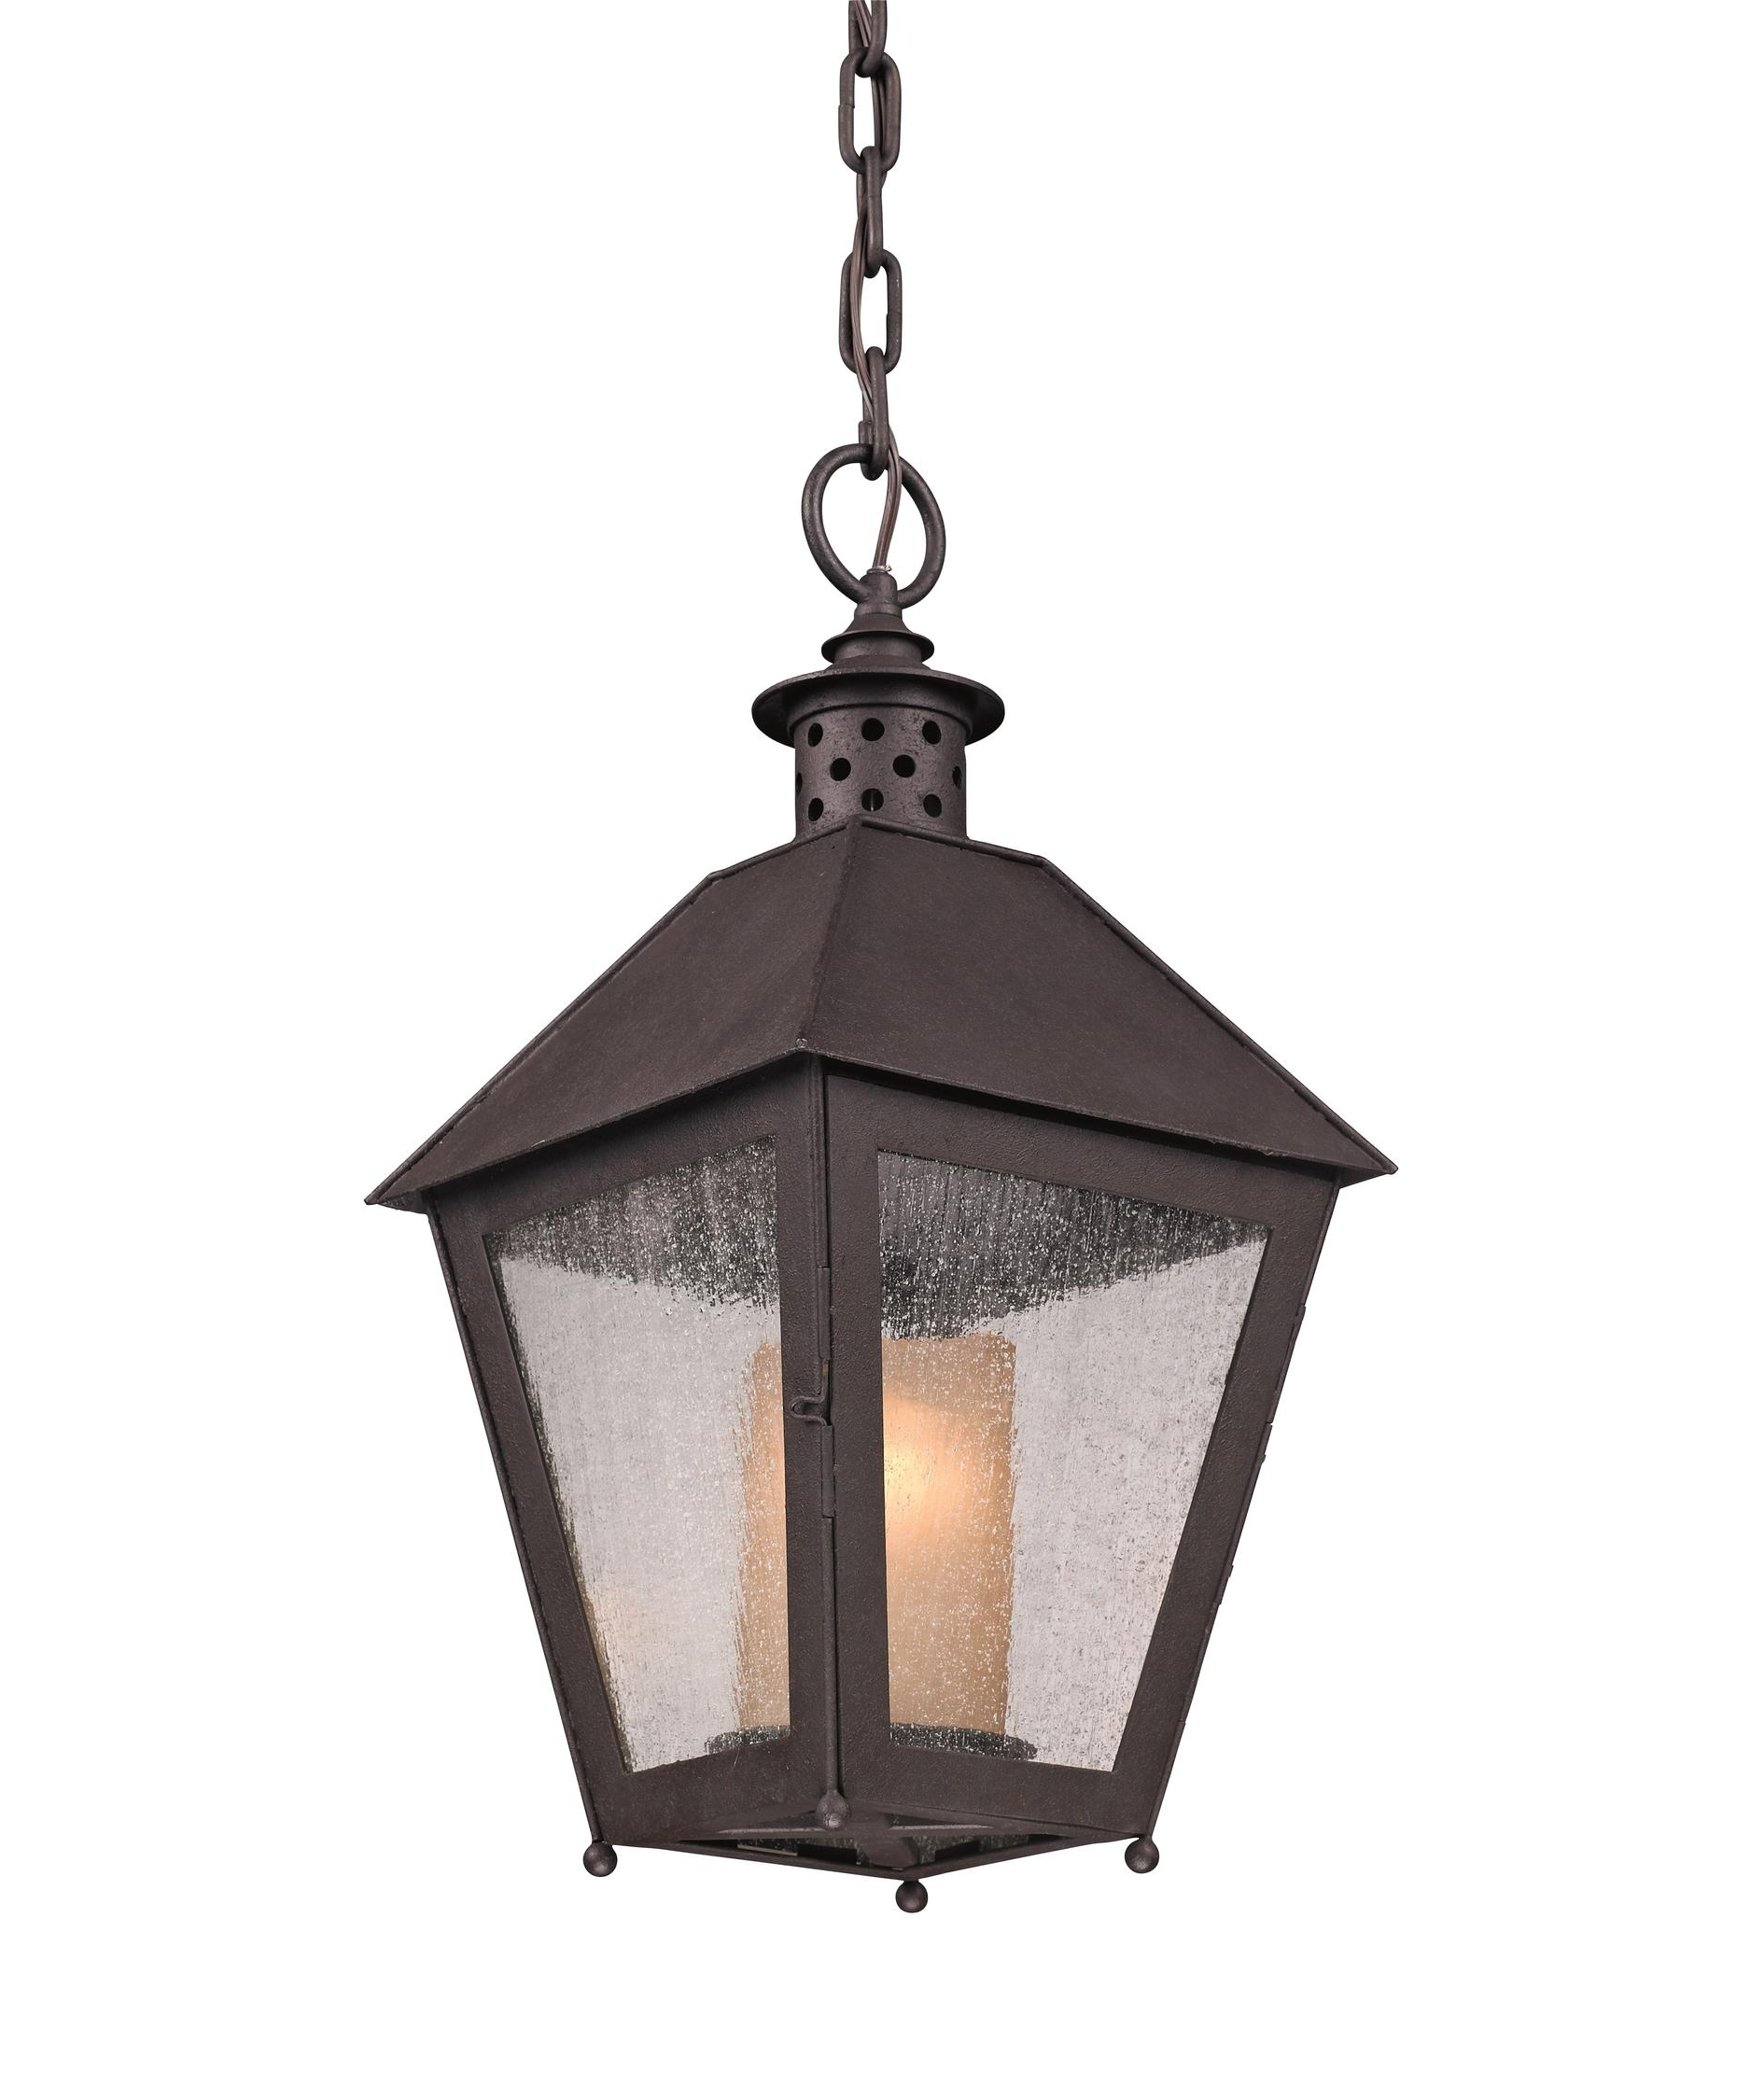 Troy Lighting F3297 Sagamore 10 Inch Wide 1 Light Outdoor Hanging With Newest Outdoor Hanging Glass Lanterns (View 5 of 20)